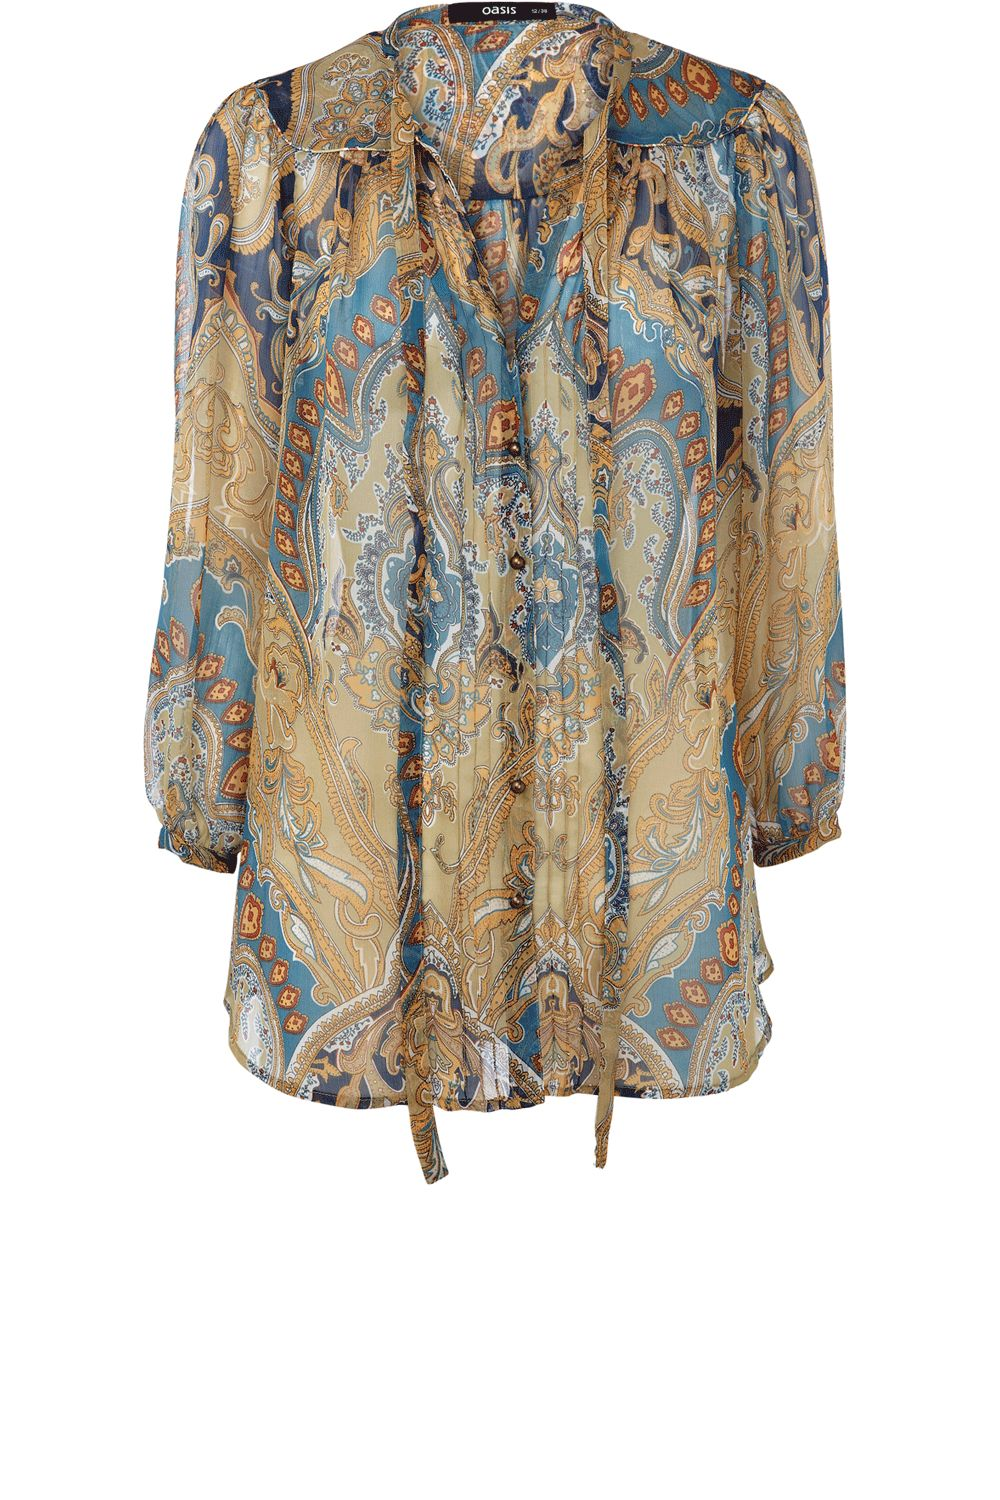 Oasis Womens Oasis Paisley blouse, Multi-Coloured product image